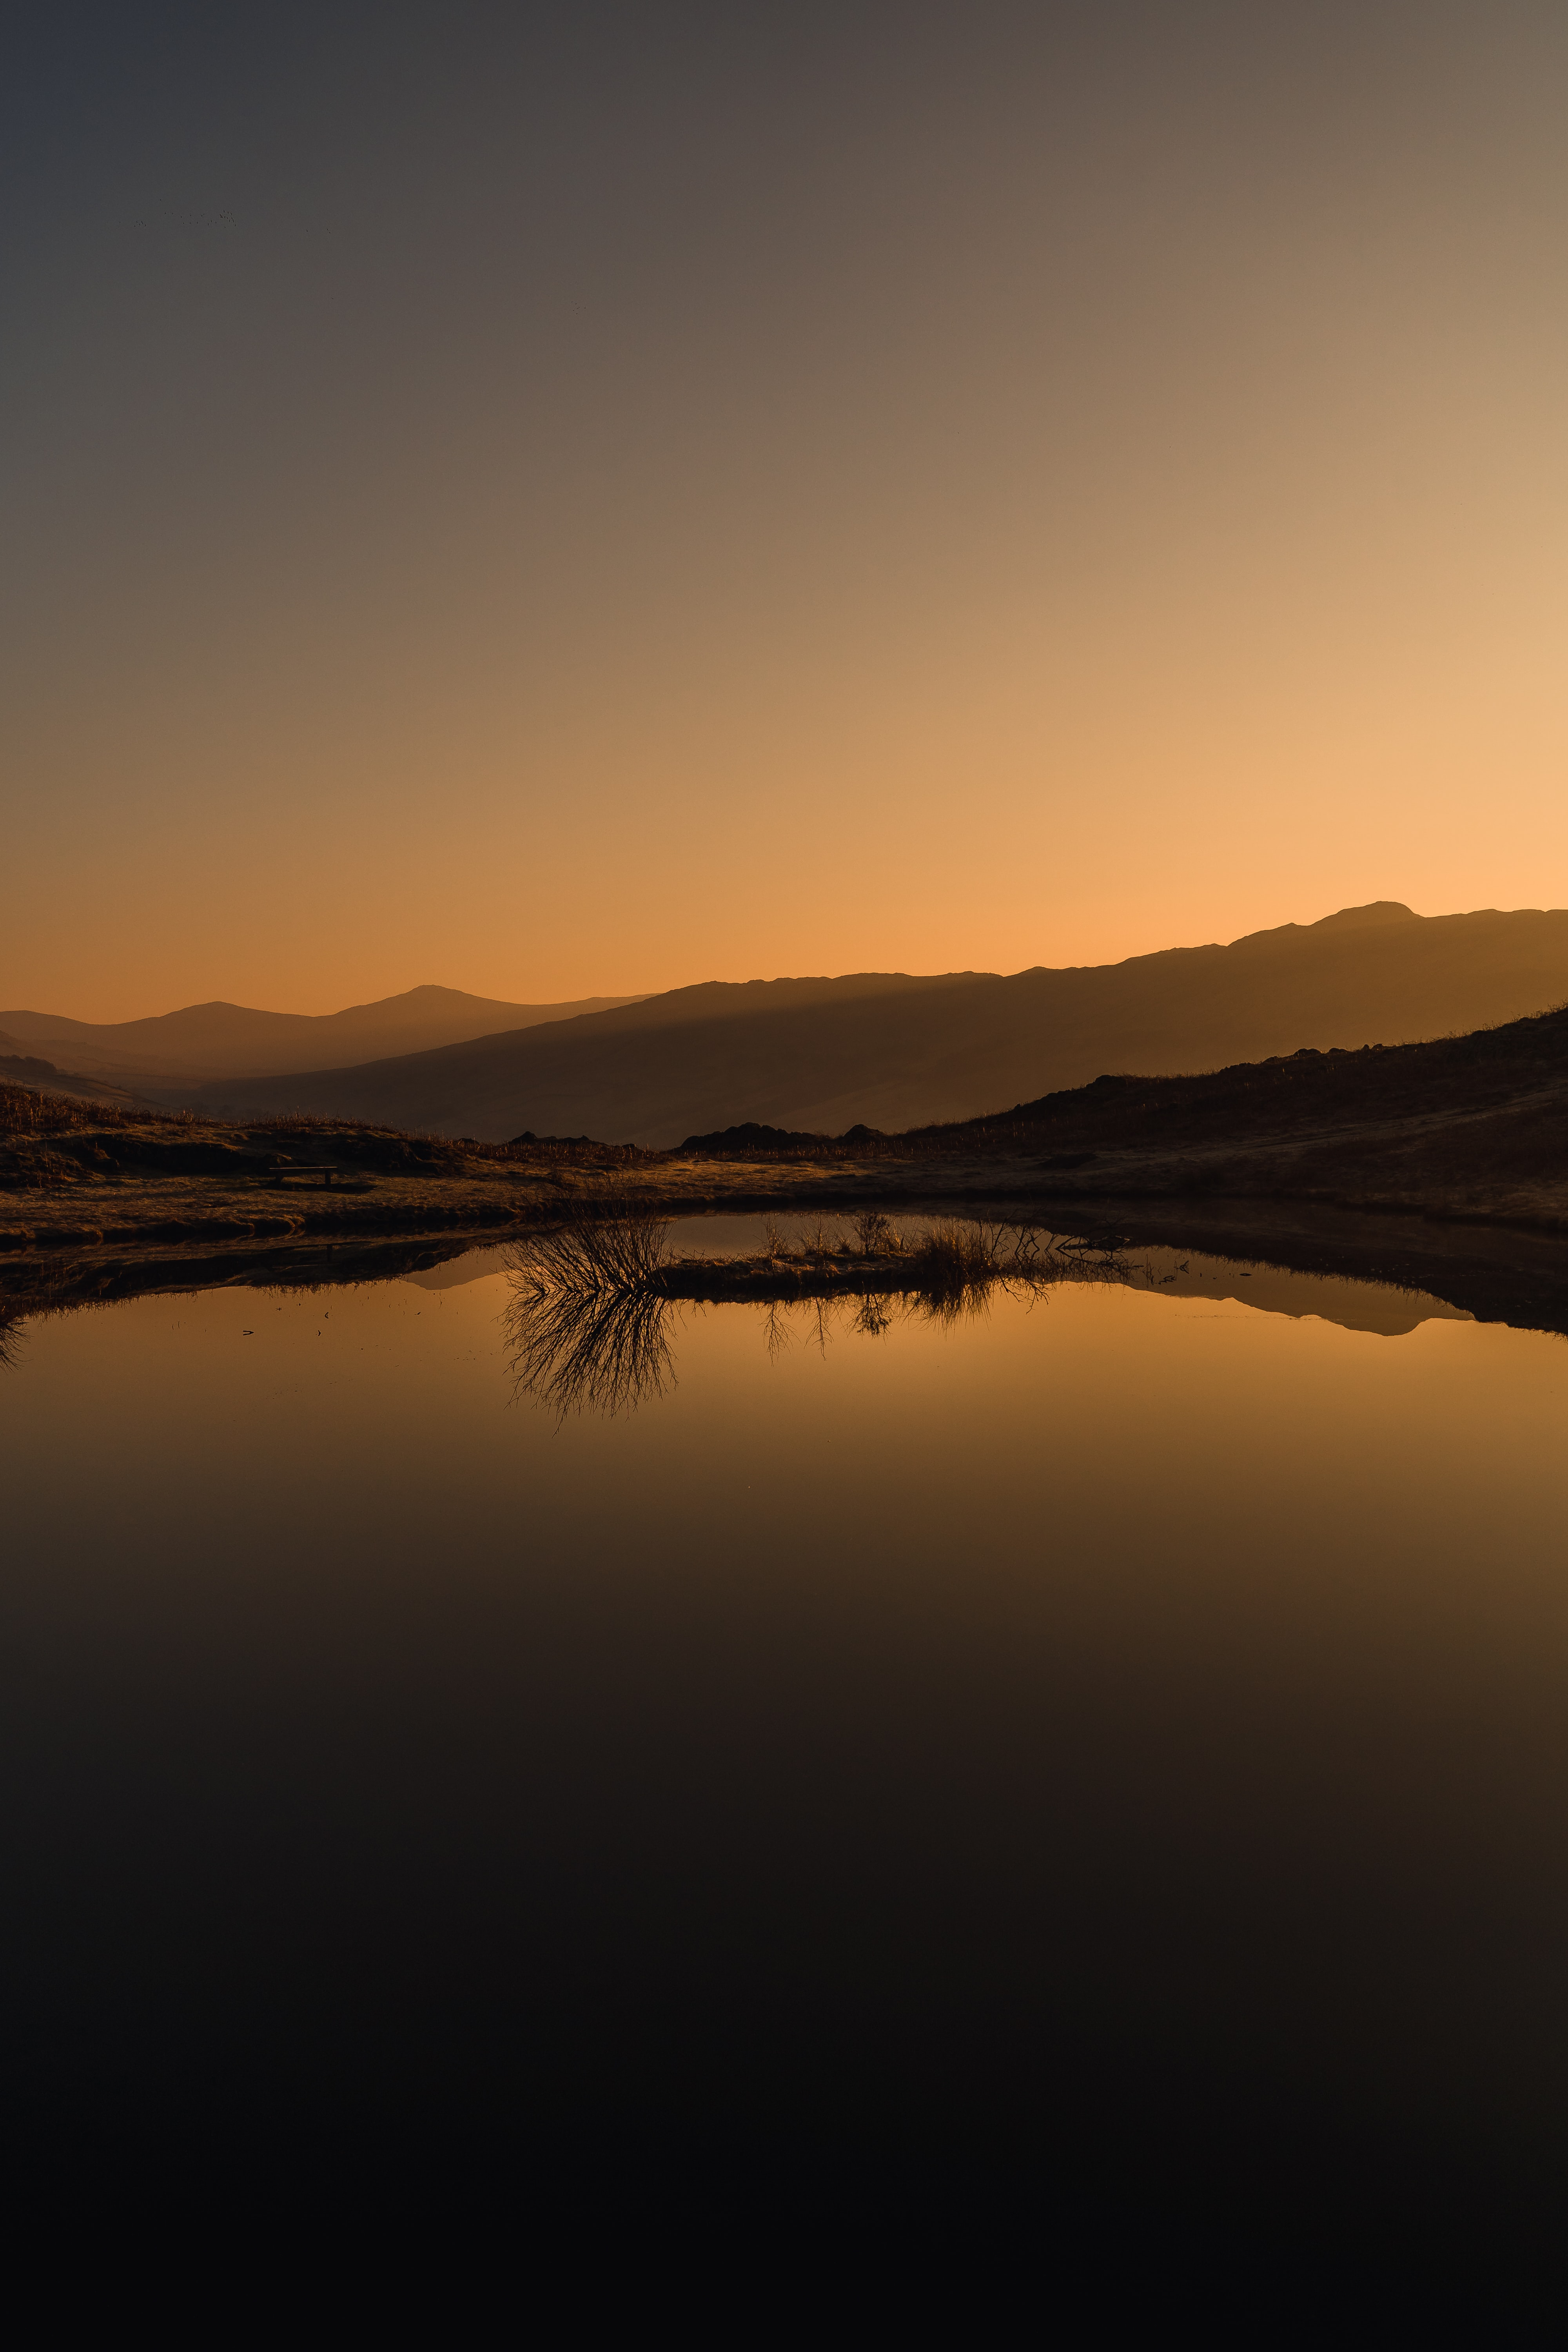 84329 download wallpaper Nature, Lake, Reflection, Sunset, Mountains, Landscape screensavers and pictures for free